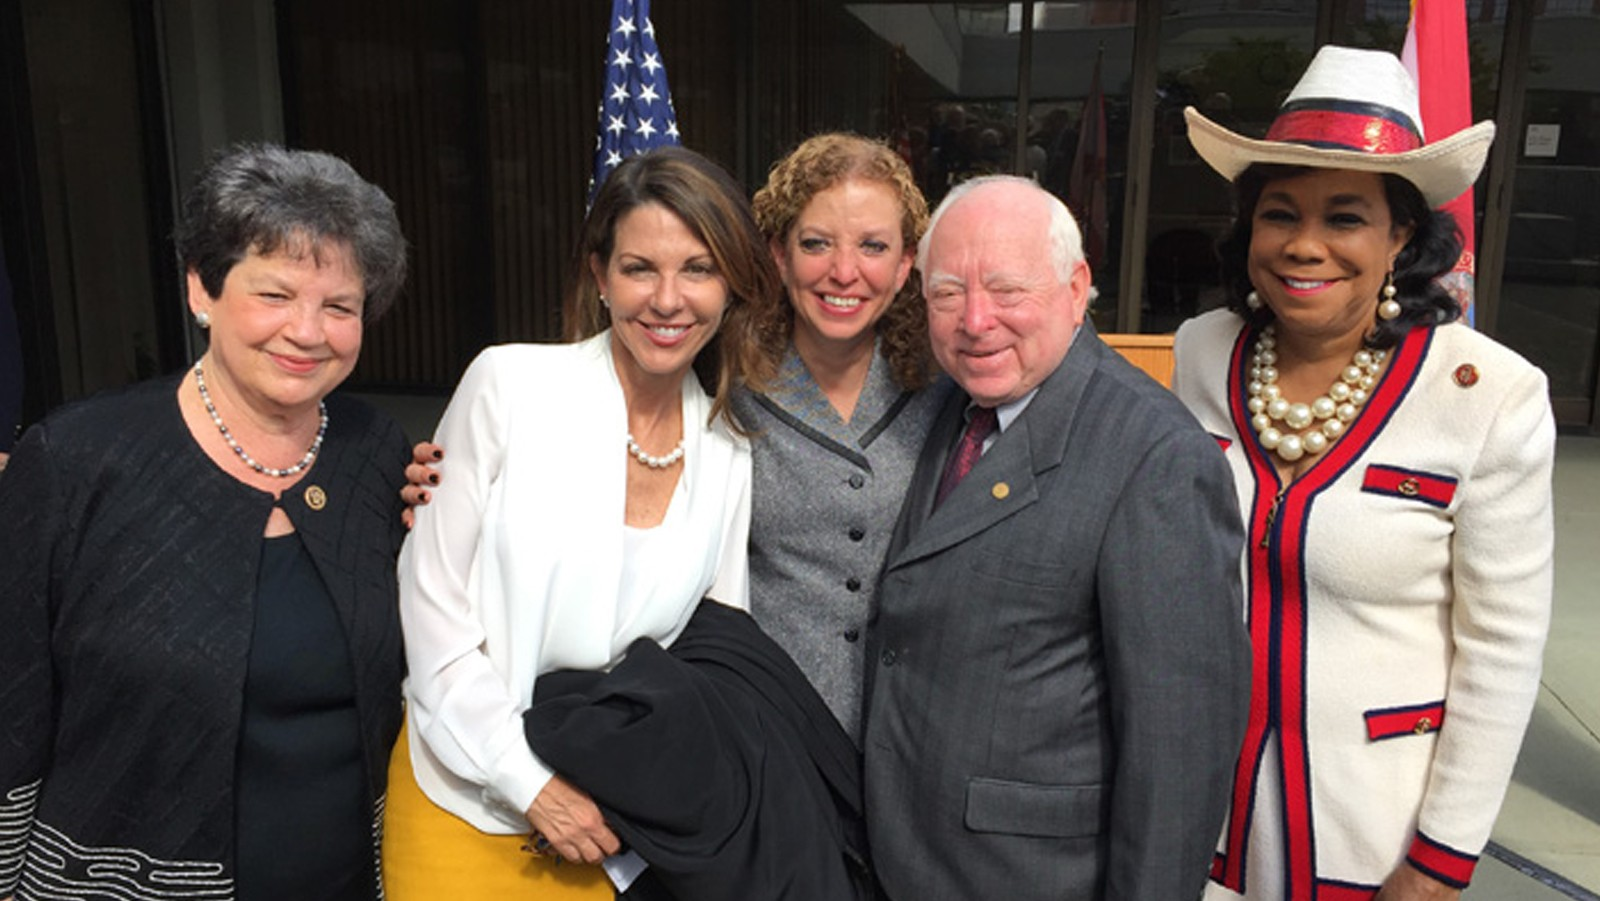 Congresswomen Frankel, Wasserman Schultz, and Wilson at their 2015 swearing-in ceremony. Image credit: NOAA